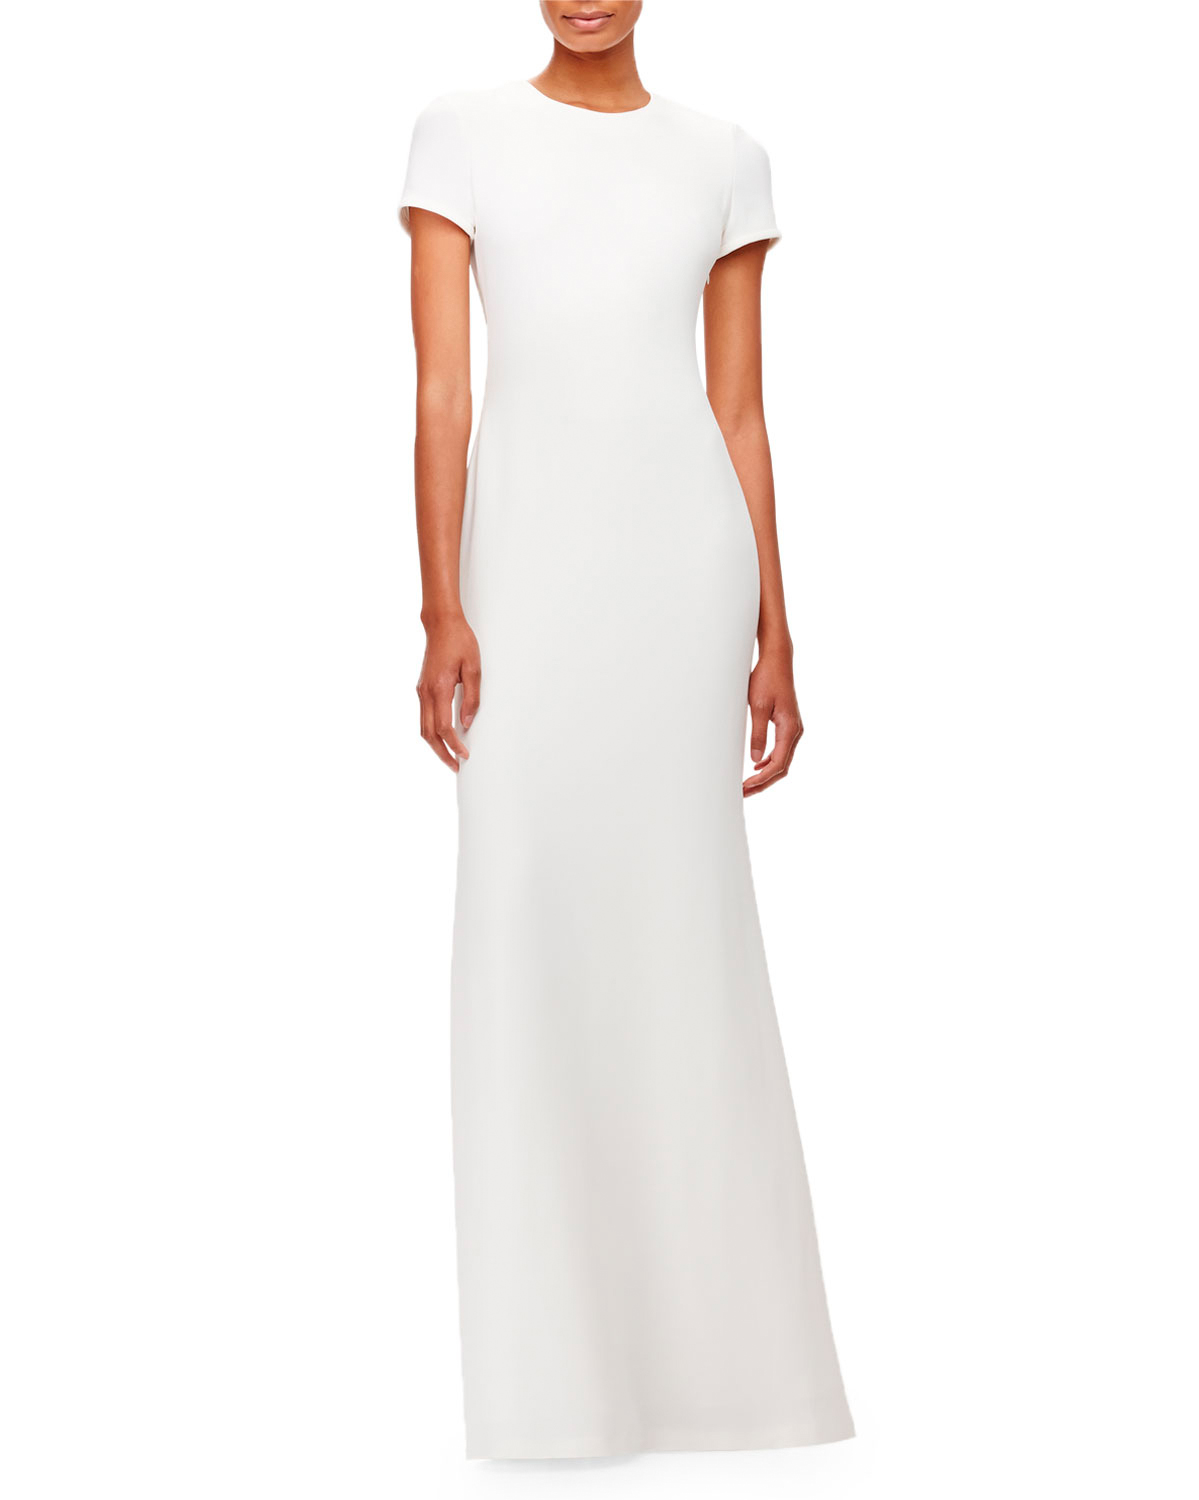 little-white-dress-calvin-klein-bg-2995-1115.jpg